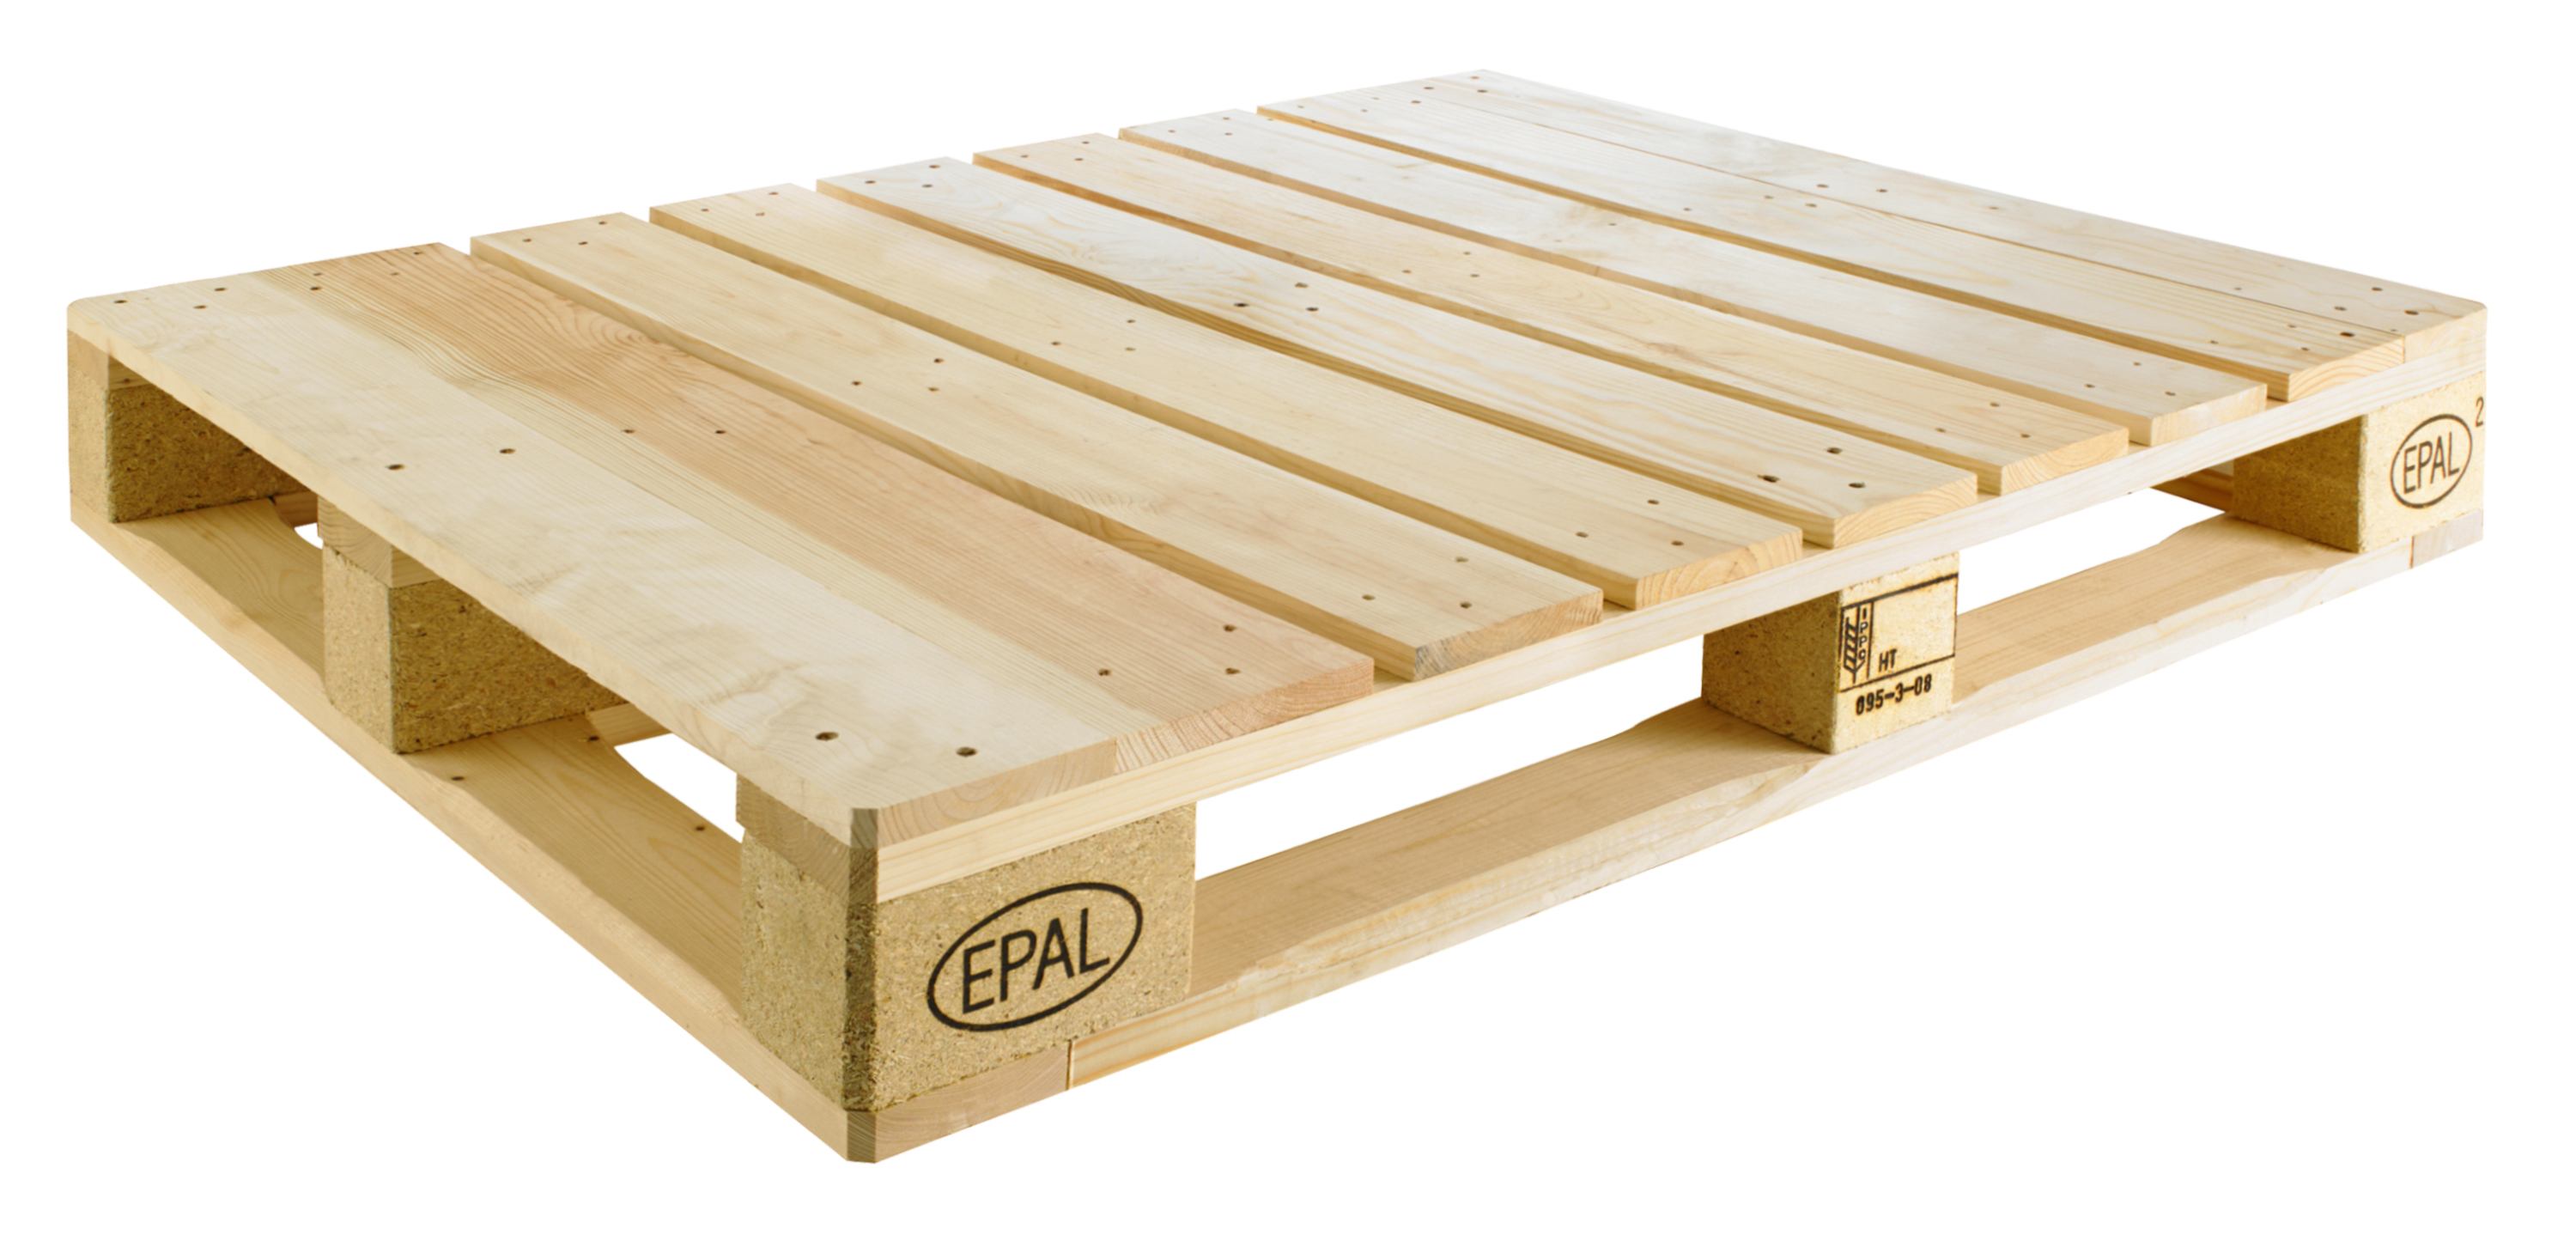 epal 2 pallet. Black Bedroom Furniture Sets. Home Design Ideas